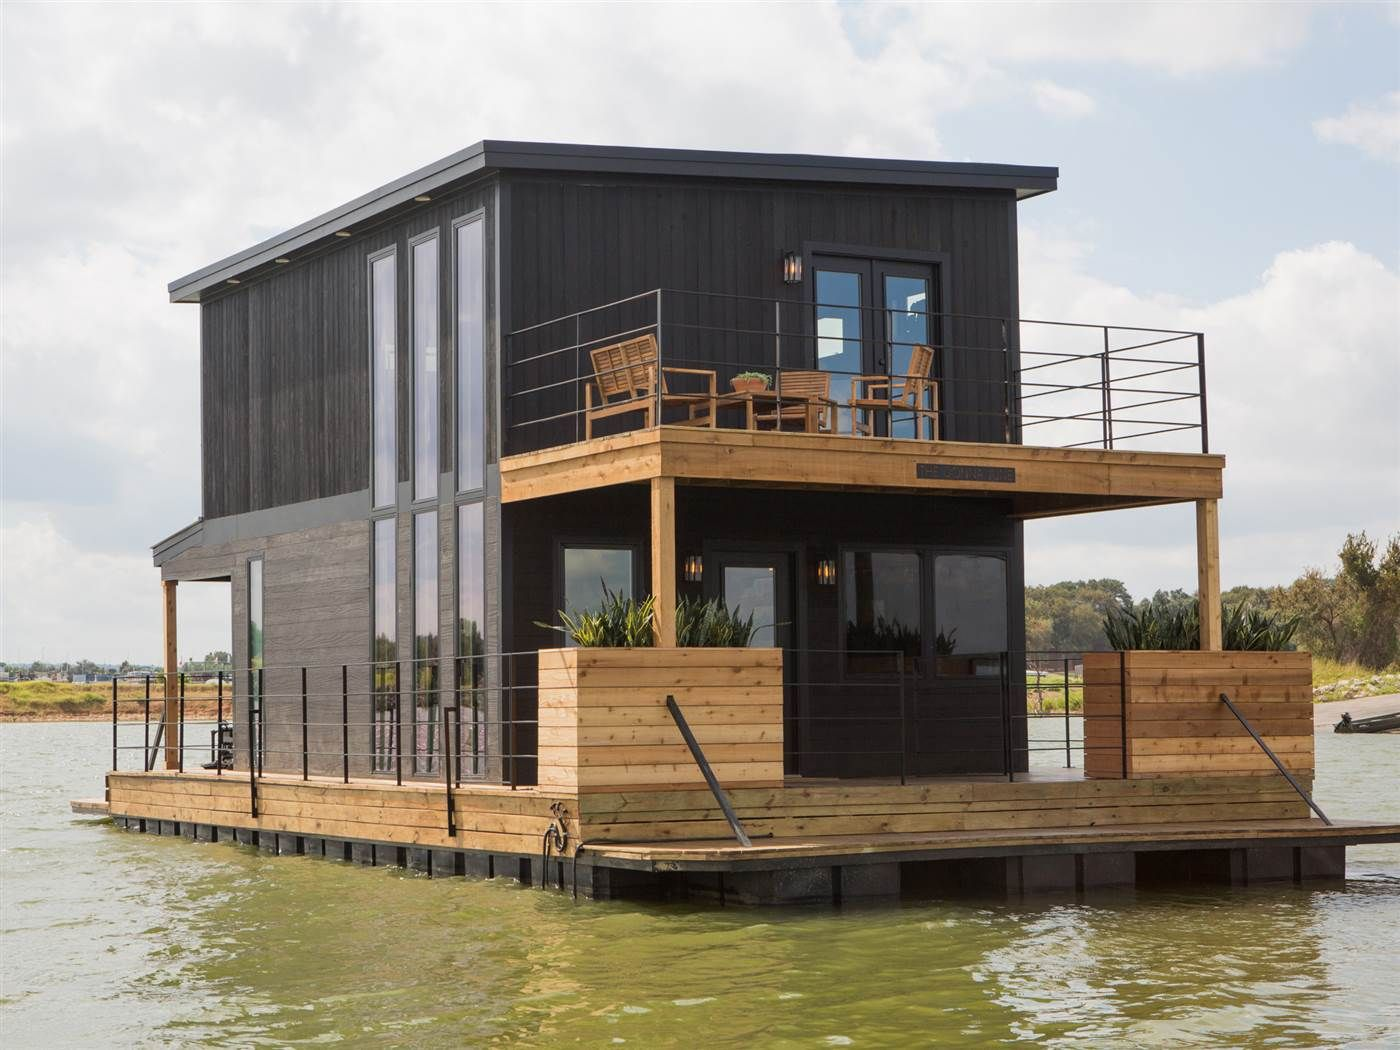 See how Chip and Joanna Gaines turned a houseboat into a ... Mobile Home Turned Into Houseboats on mobile home camp, mobile home sunflower, mobile homes with garages, mobile home loft, mobile home mansion, mobile home hurricane, mobile home chalet, mobile home yacht, mobile home duplex, mobile home castle, mobile home house, mobile home office, mobile home trailer, mobile home studio, mobile home hotel, mobile home custom, mobile home camper, mobile home condo, mobile home room, mobile home motel,